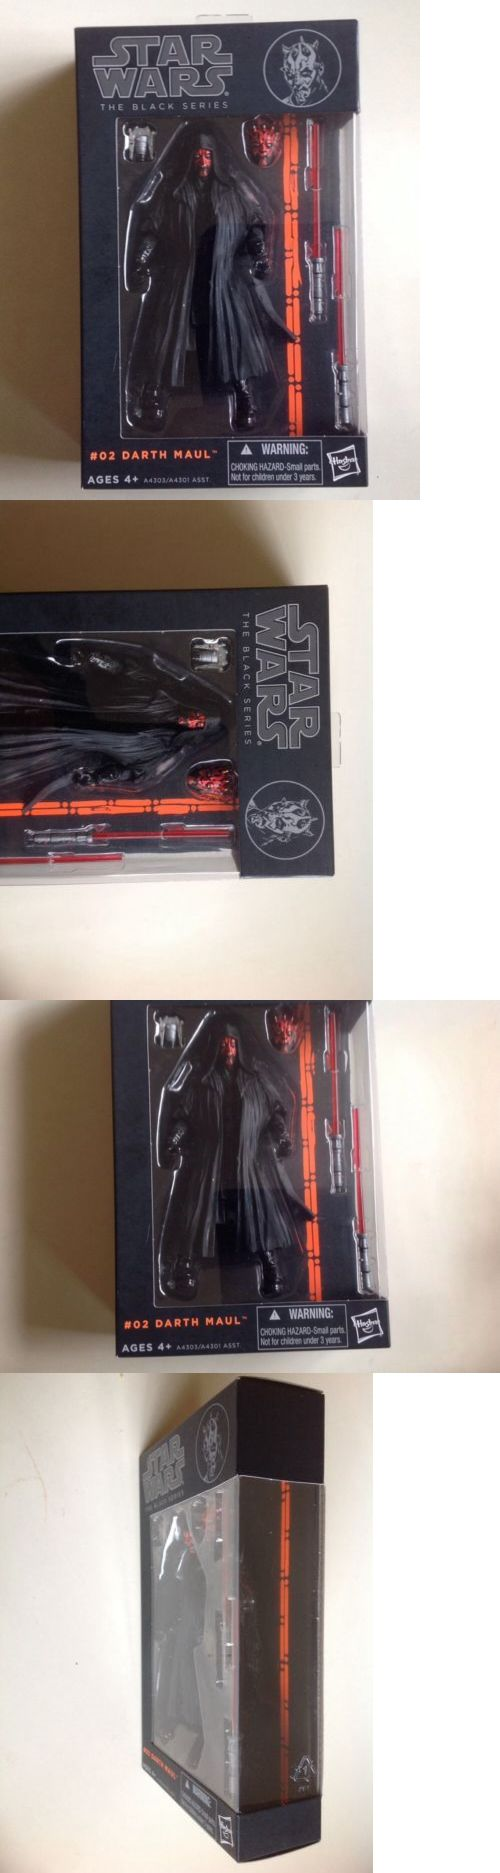 Toys And Games: Disney Hasbro Star Wars The Black Series 6 Inch #02 Darth Maul Authentic -> BUY IT NOW ONLY: $100 on eBay!